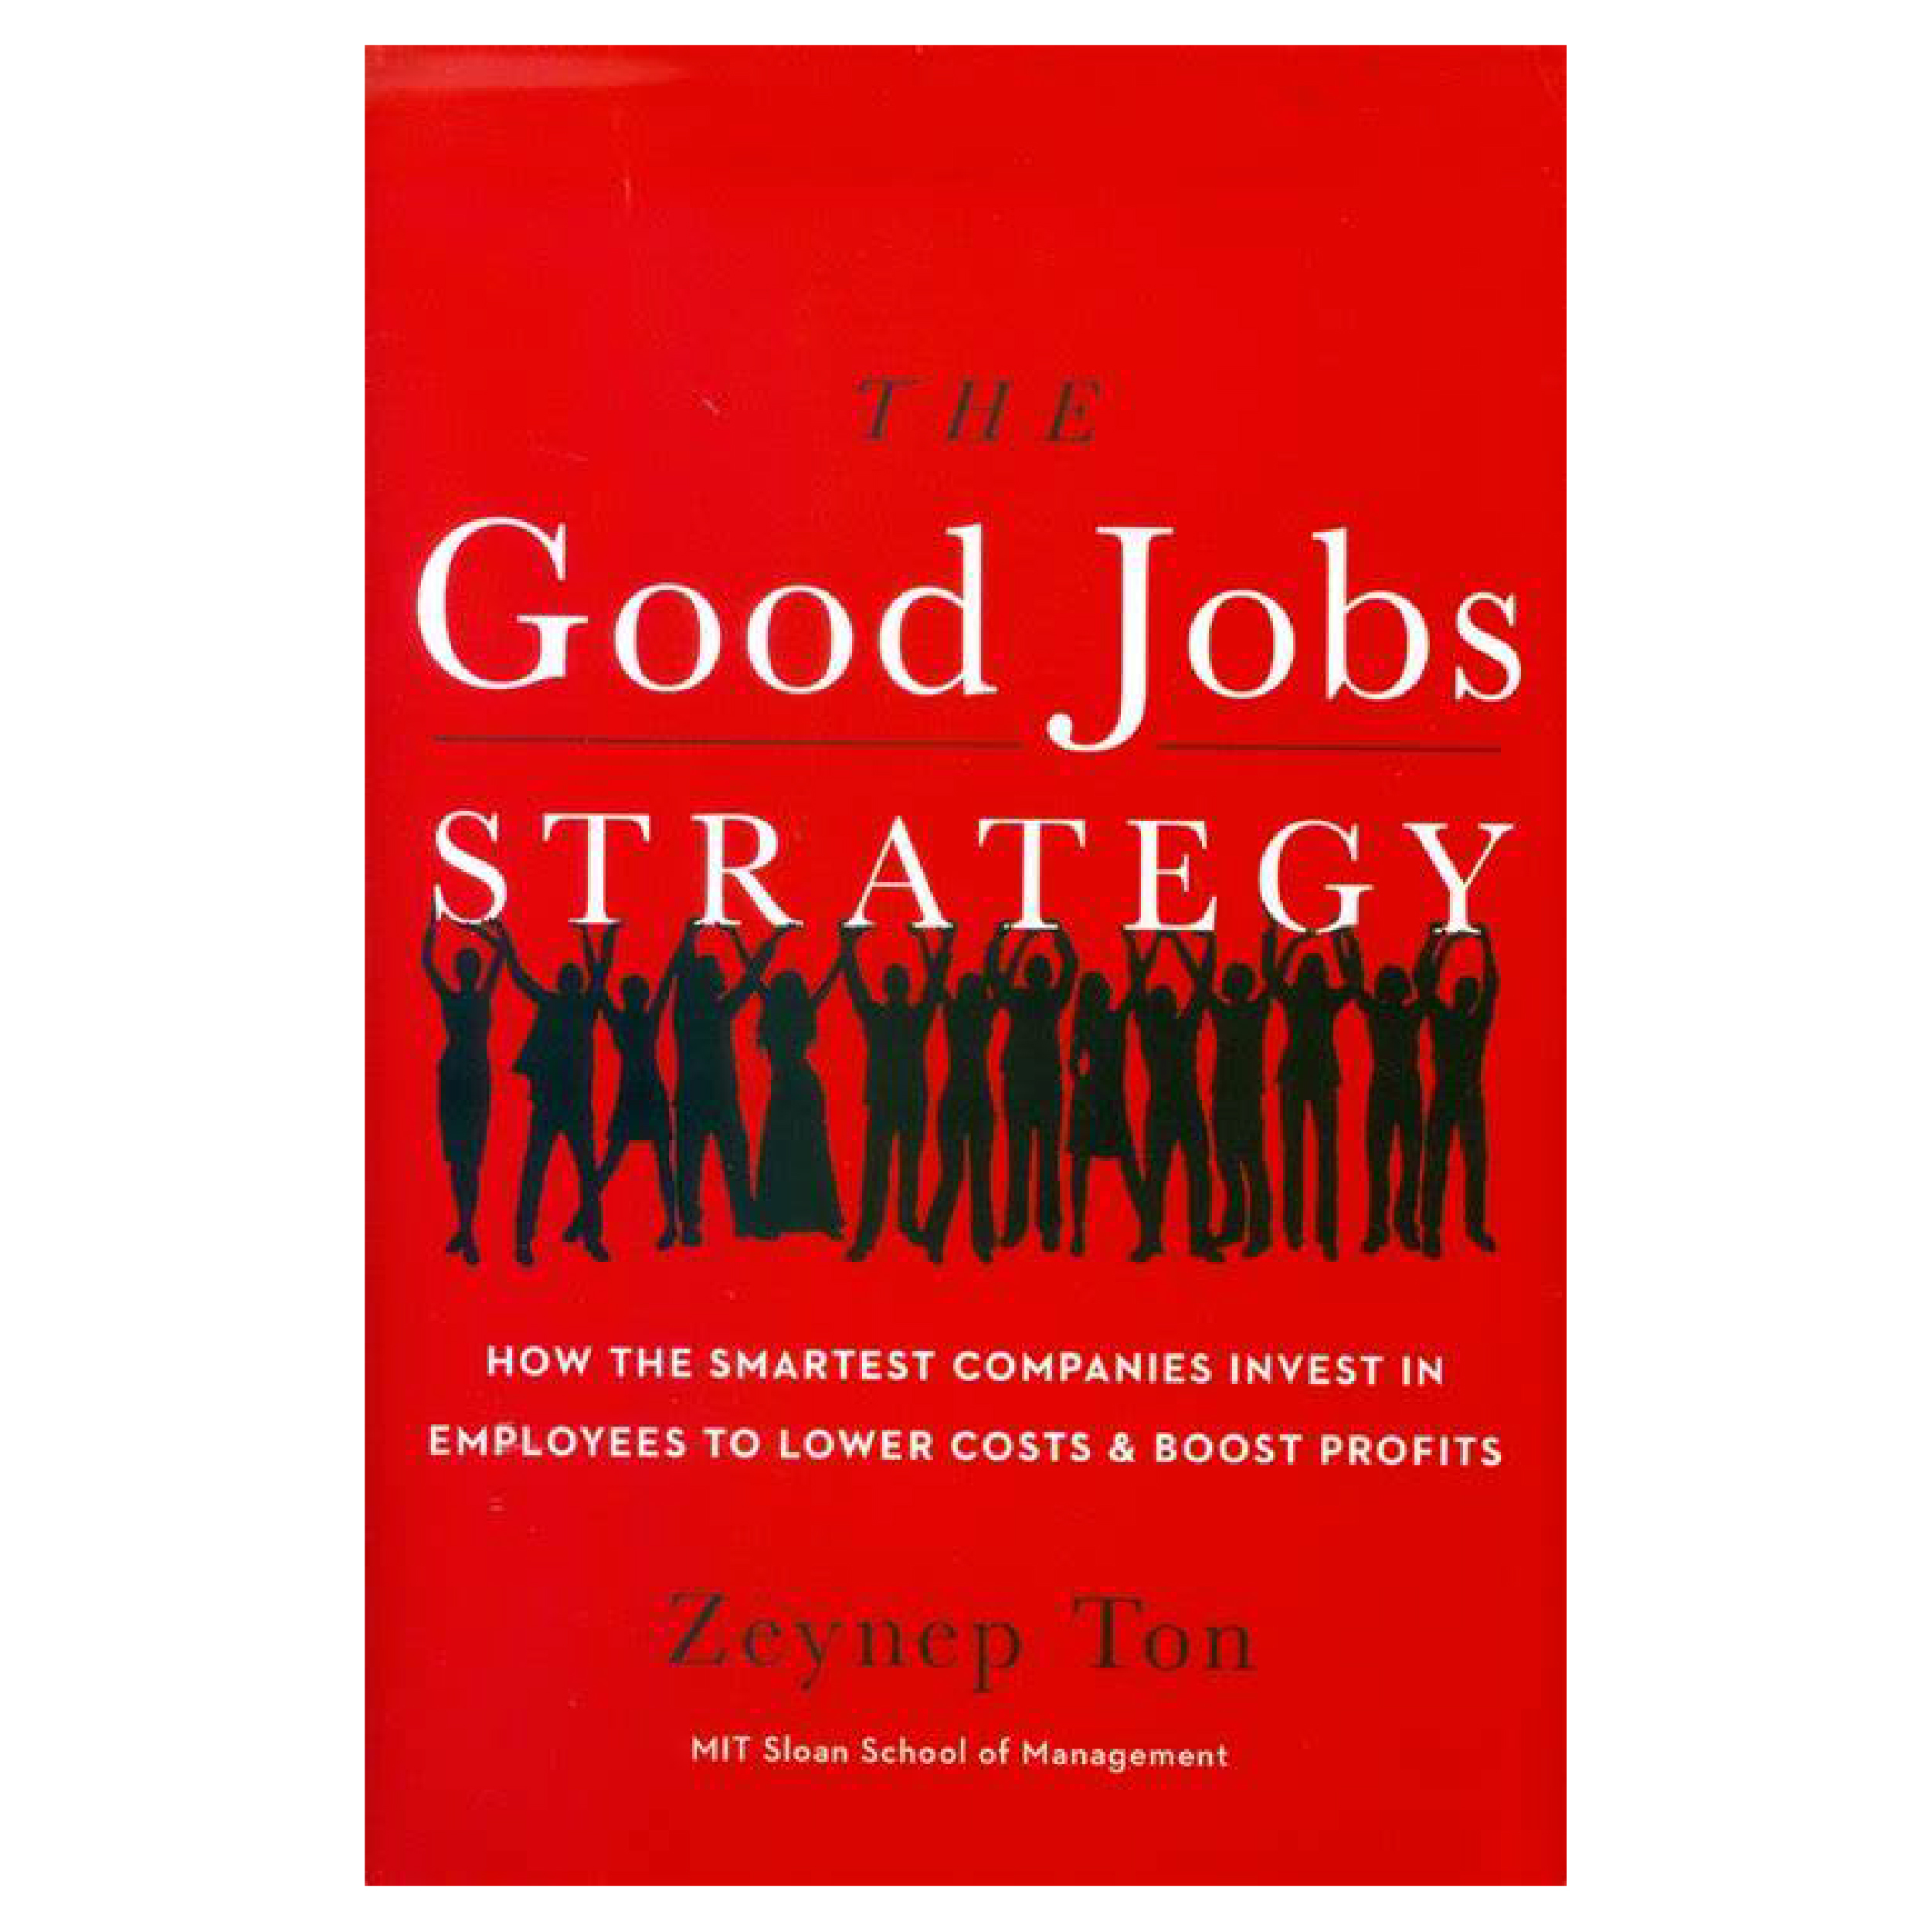 Red book cover The Good Jobs STRATEGY How the smartest companies invest in employees to lower costs & boost profits Zeynep Ton MIT Sloan School of Managment